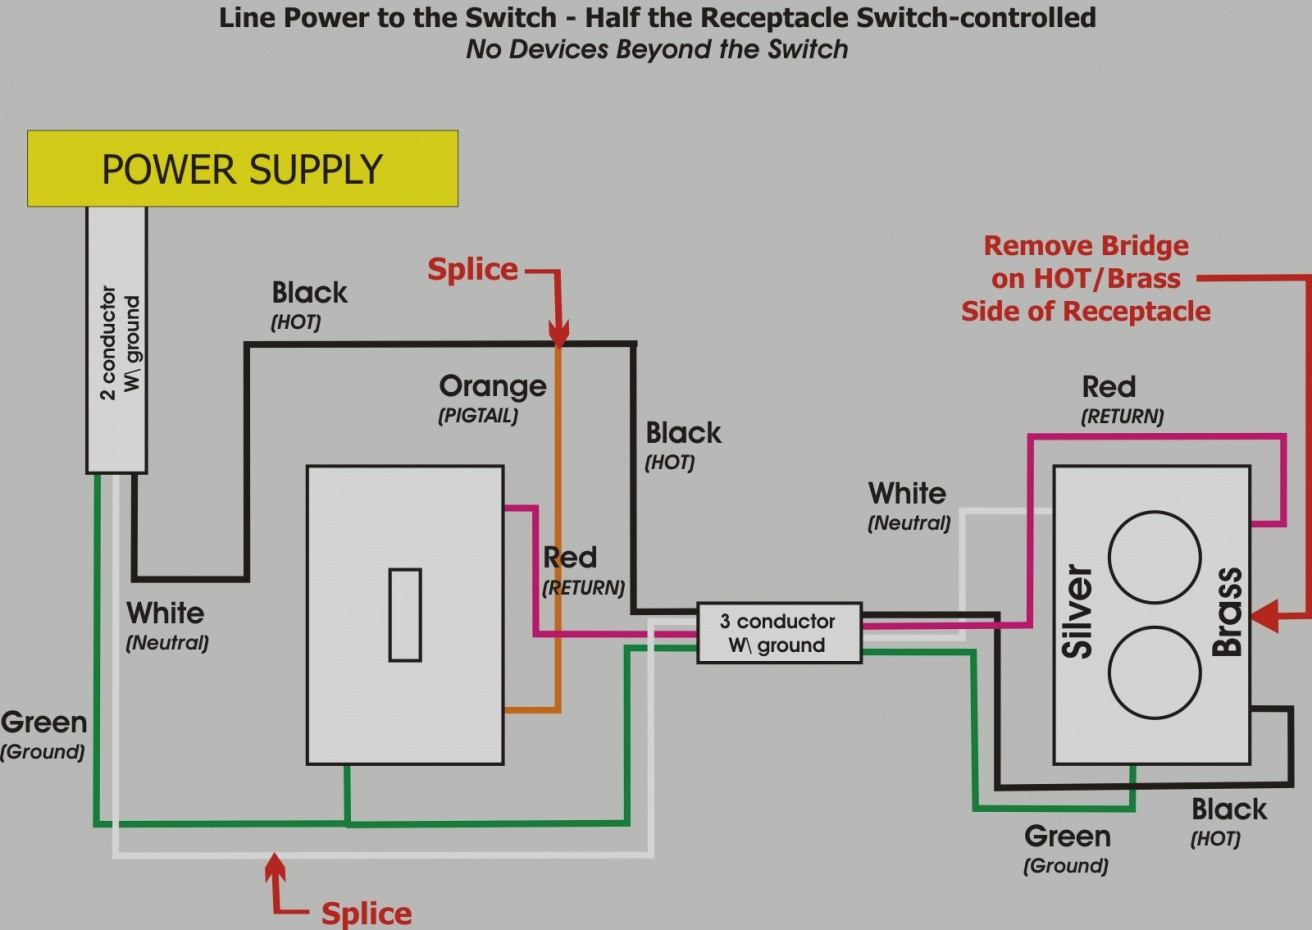 Light Switch Wiring Diagram 220v - 98 Jeep Grand Cherokee Laredo Wiring  Diagram 3wiring.au-delice-limousin.fr [ 930 x 1312 Pixel ]